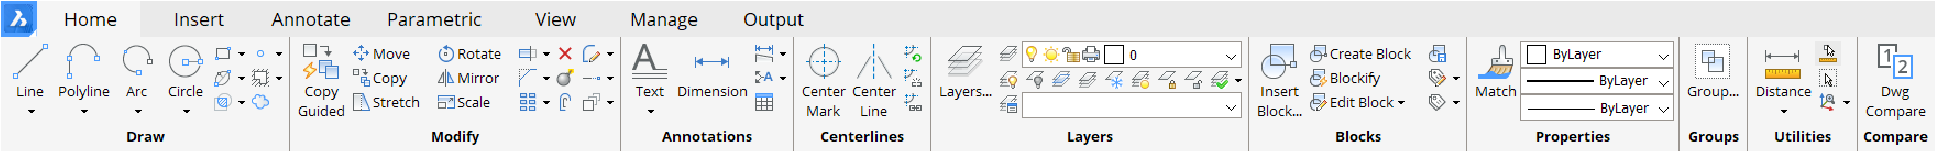 the ribbon in BricsCAD